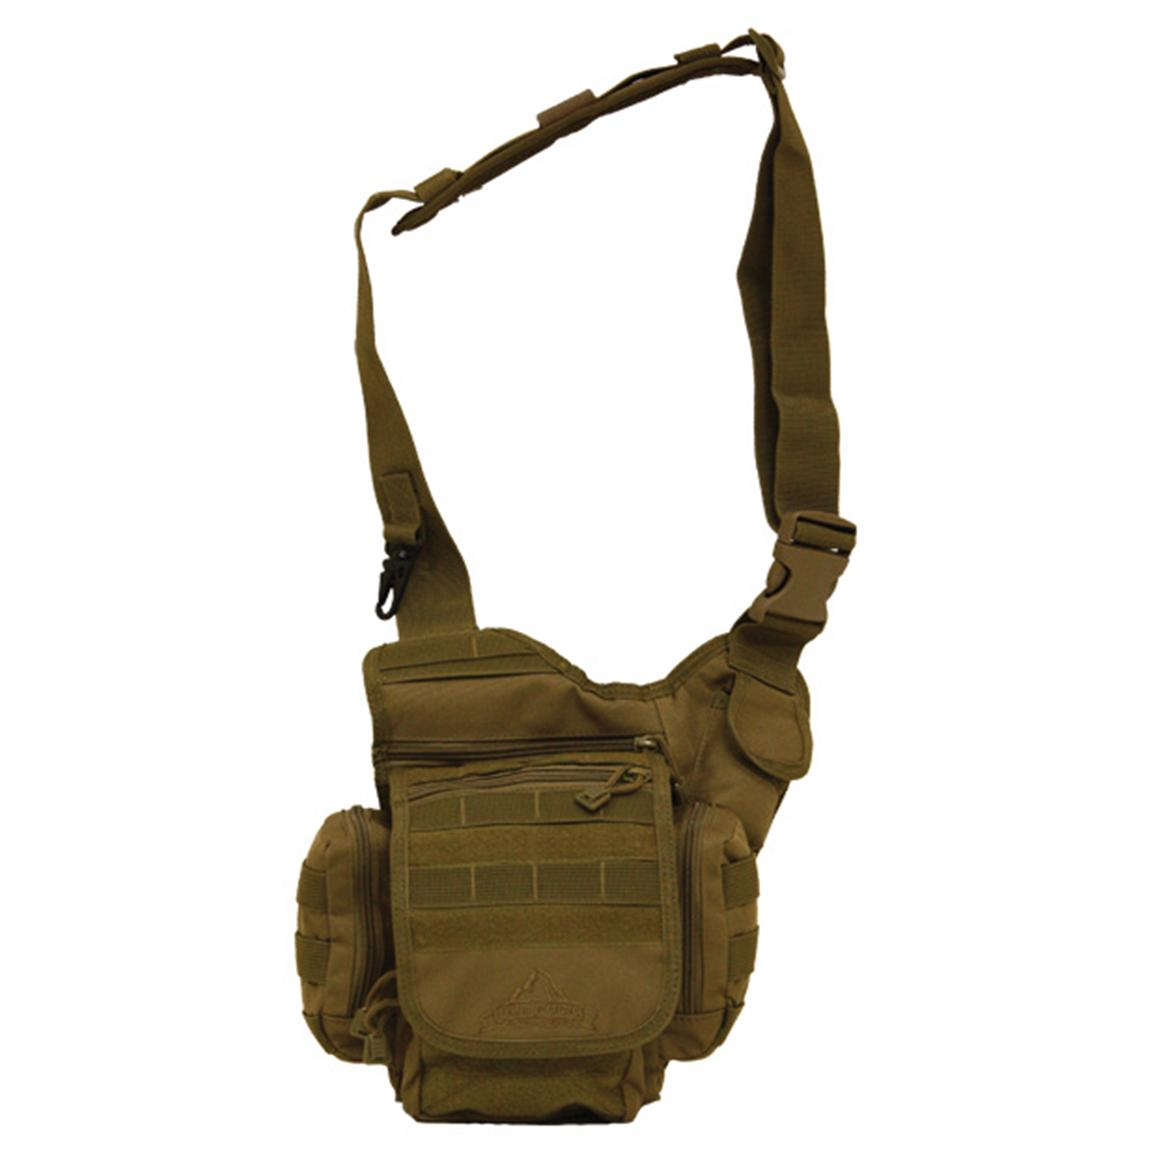 Red Rock Outdoor Gear™ Nomad Sling Bag, Coyote